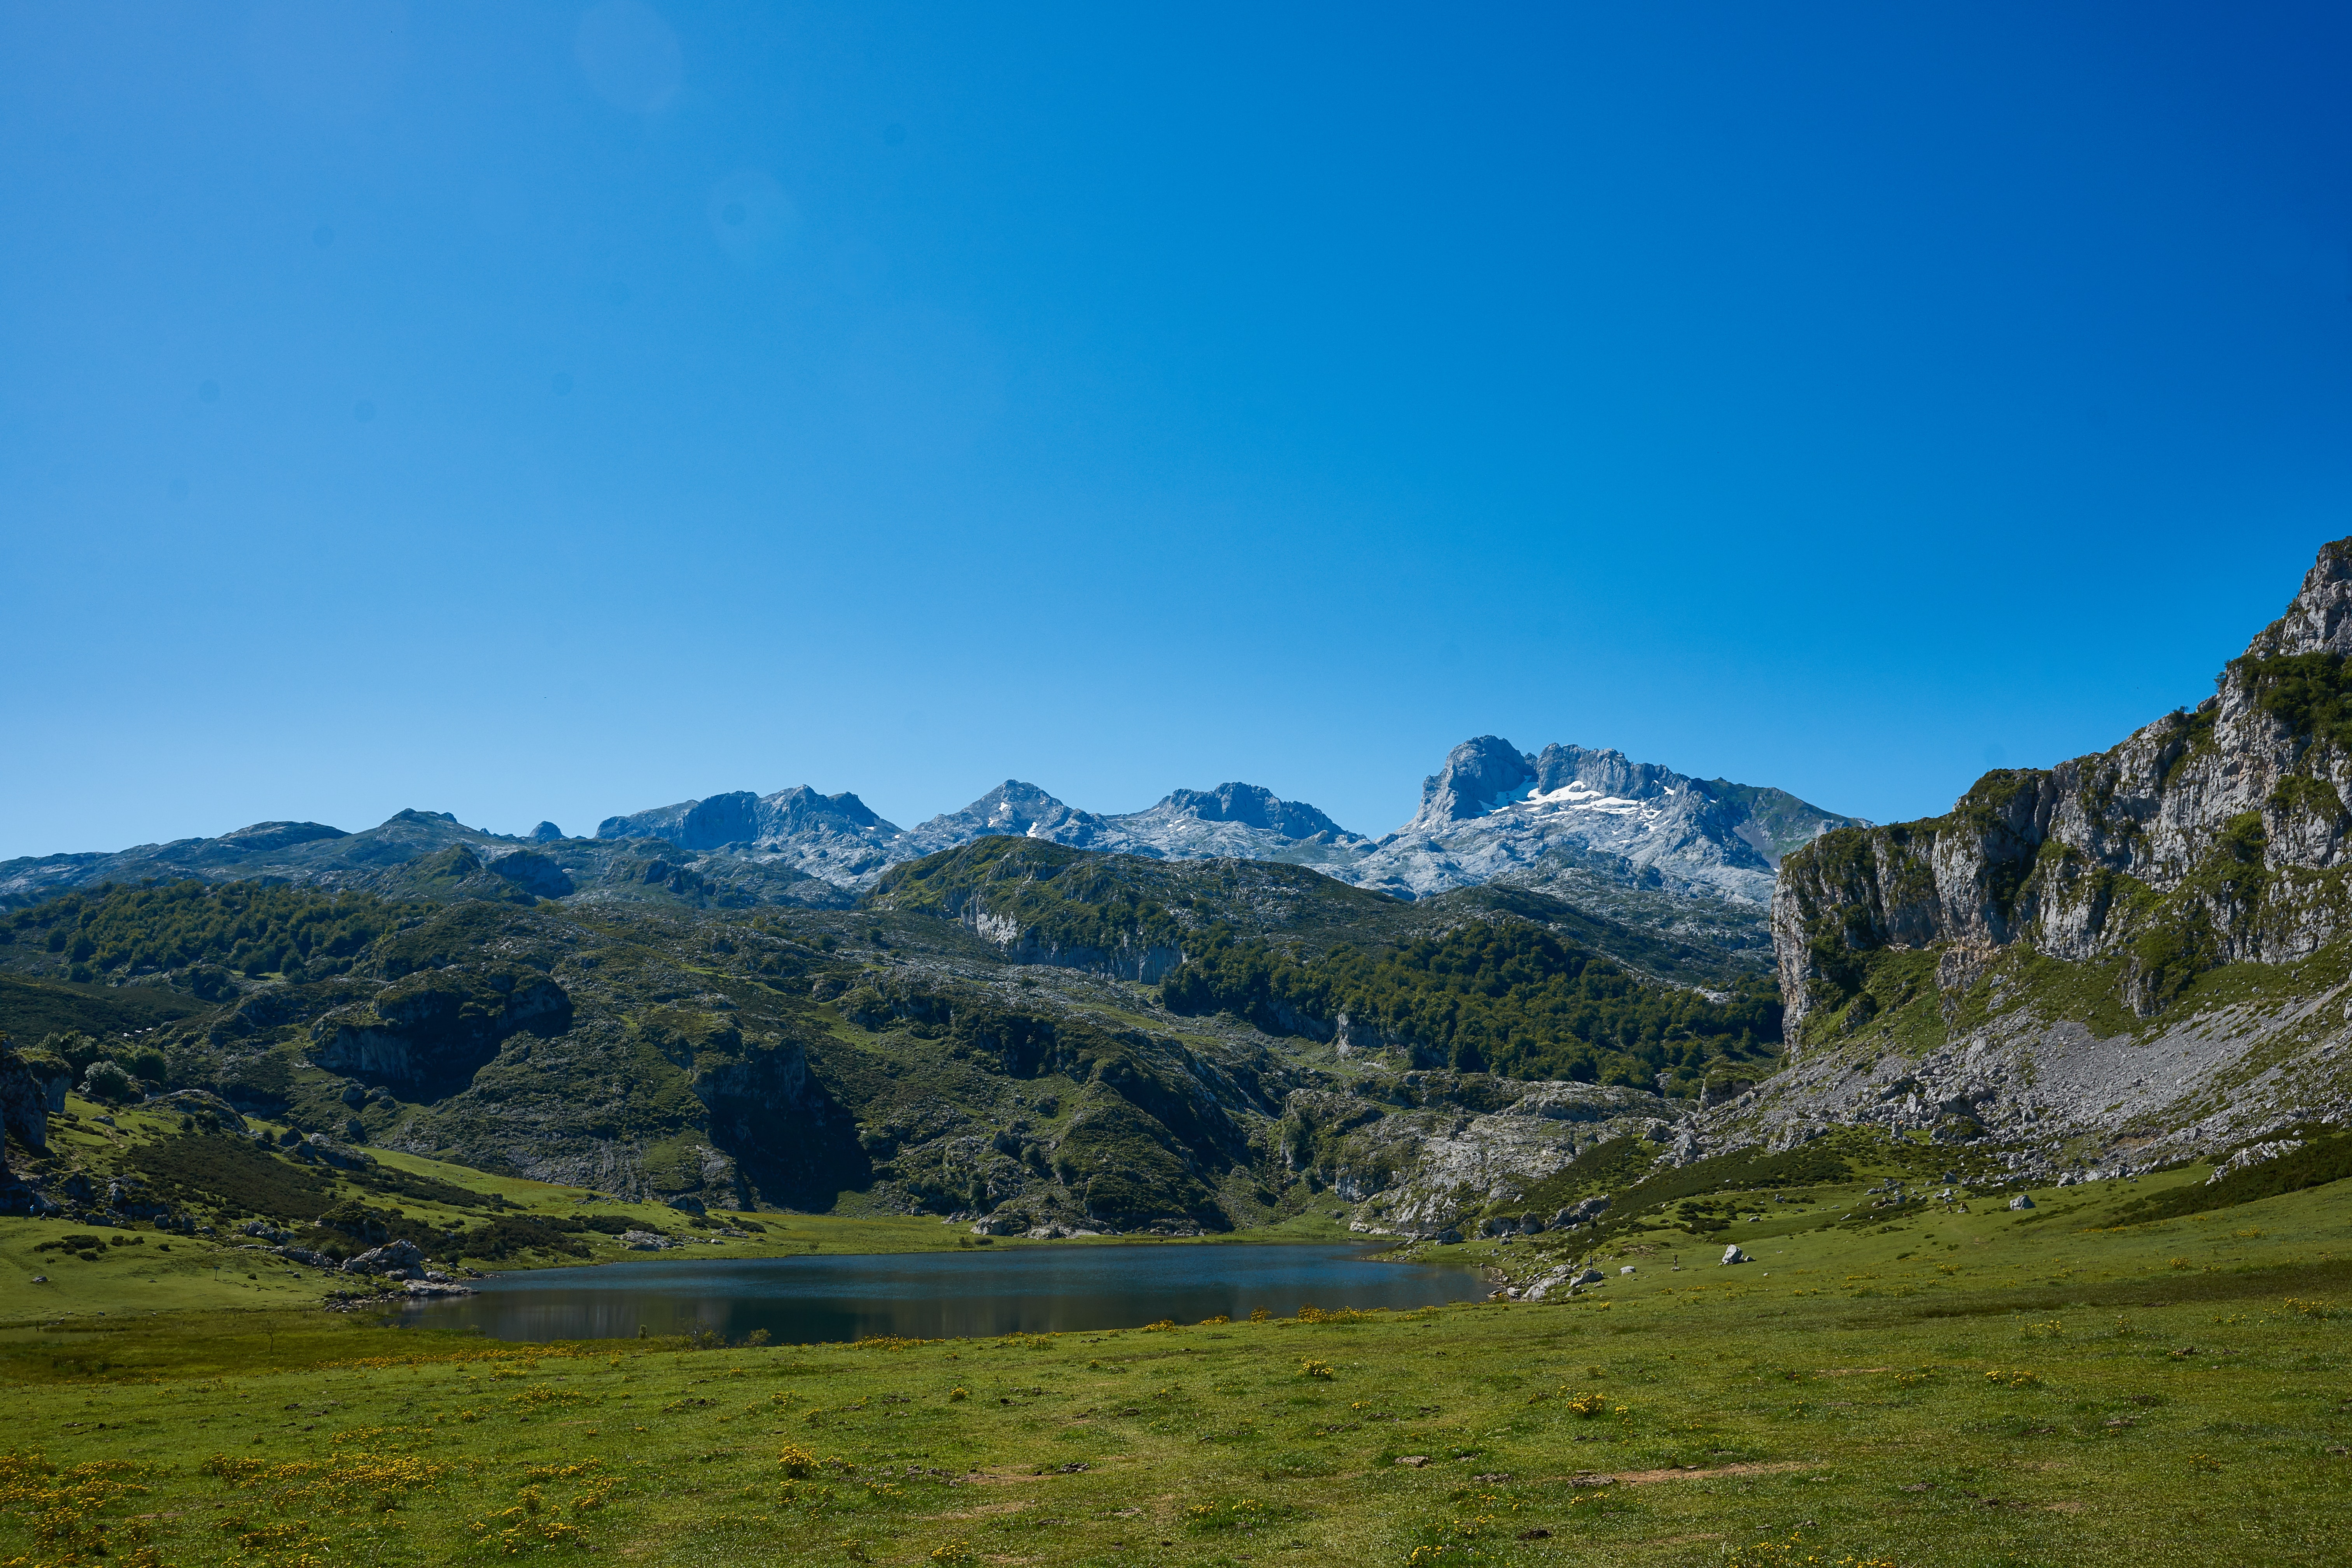 Mountain Under Blue Skies, Clouds, Outdoors, Water, Trees, HQ Photo